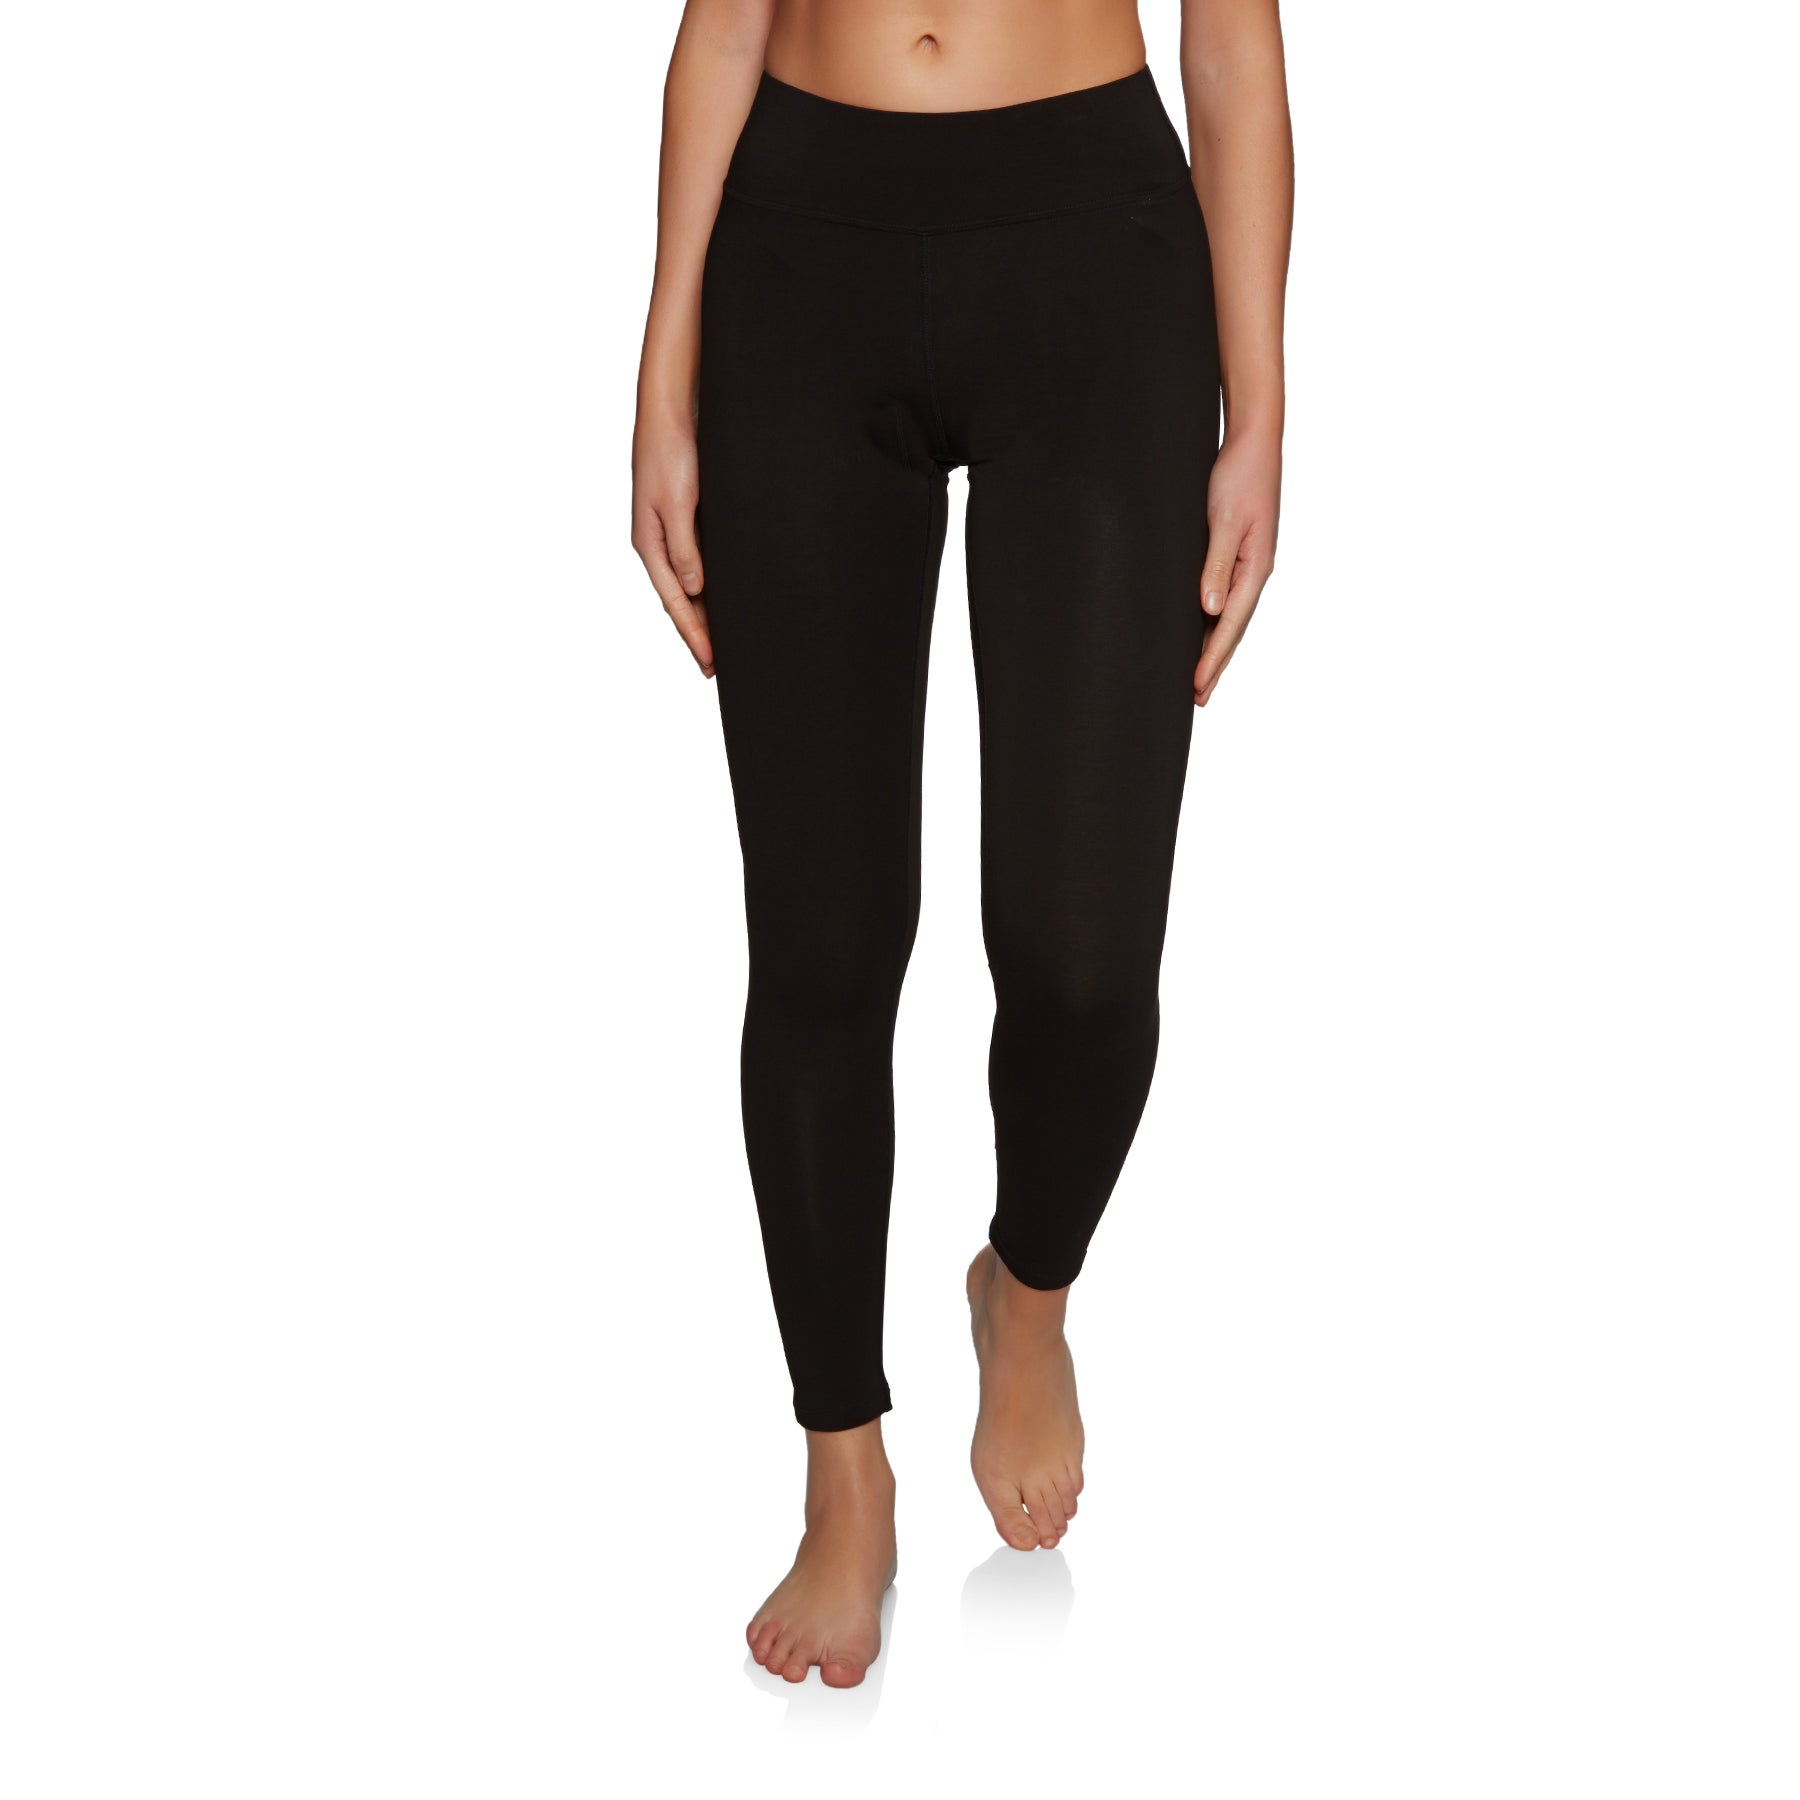 SWELL Cardrona Thermal Womens Base Layer Leggings - Black